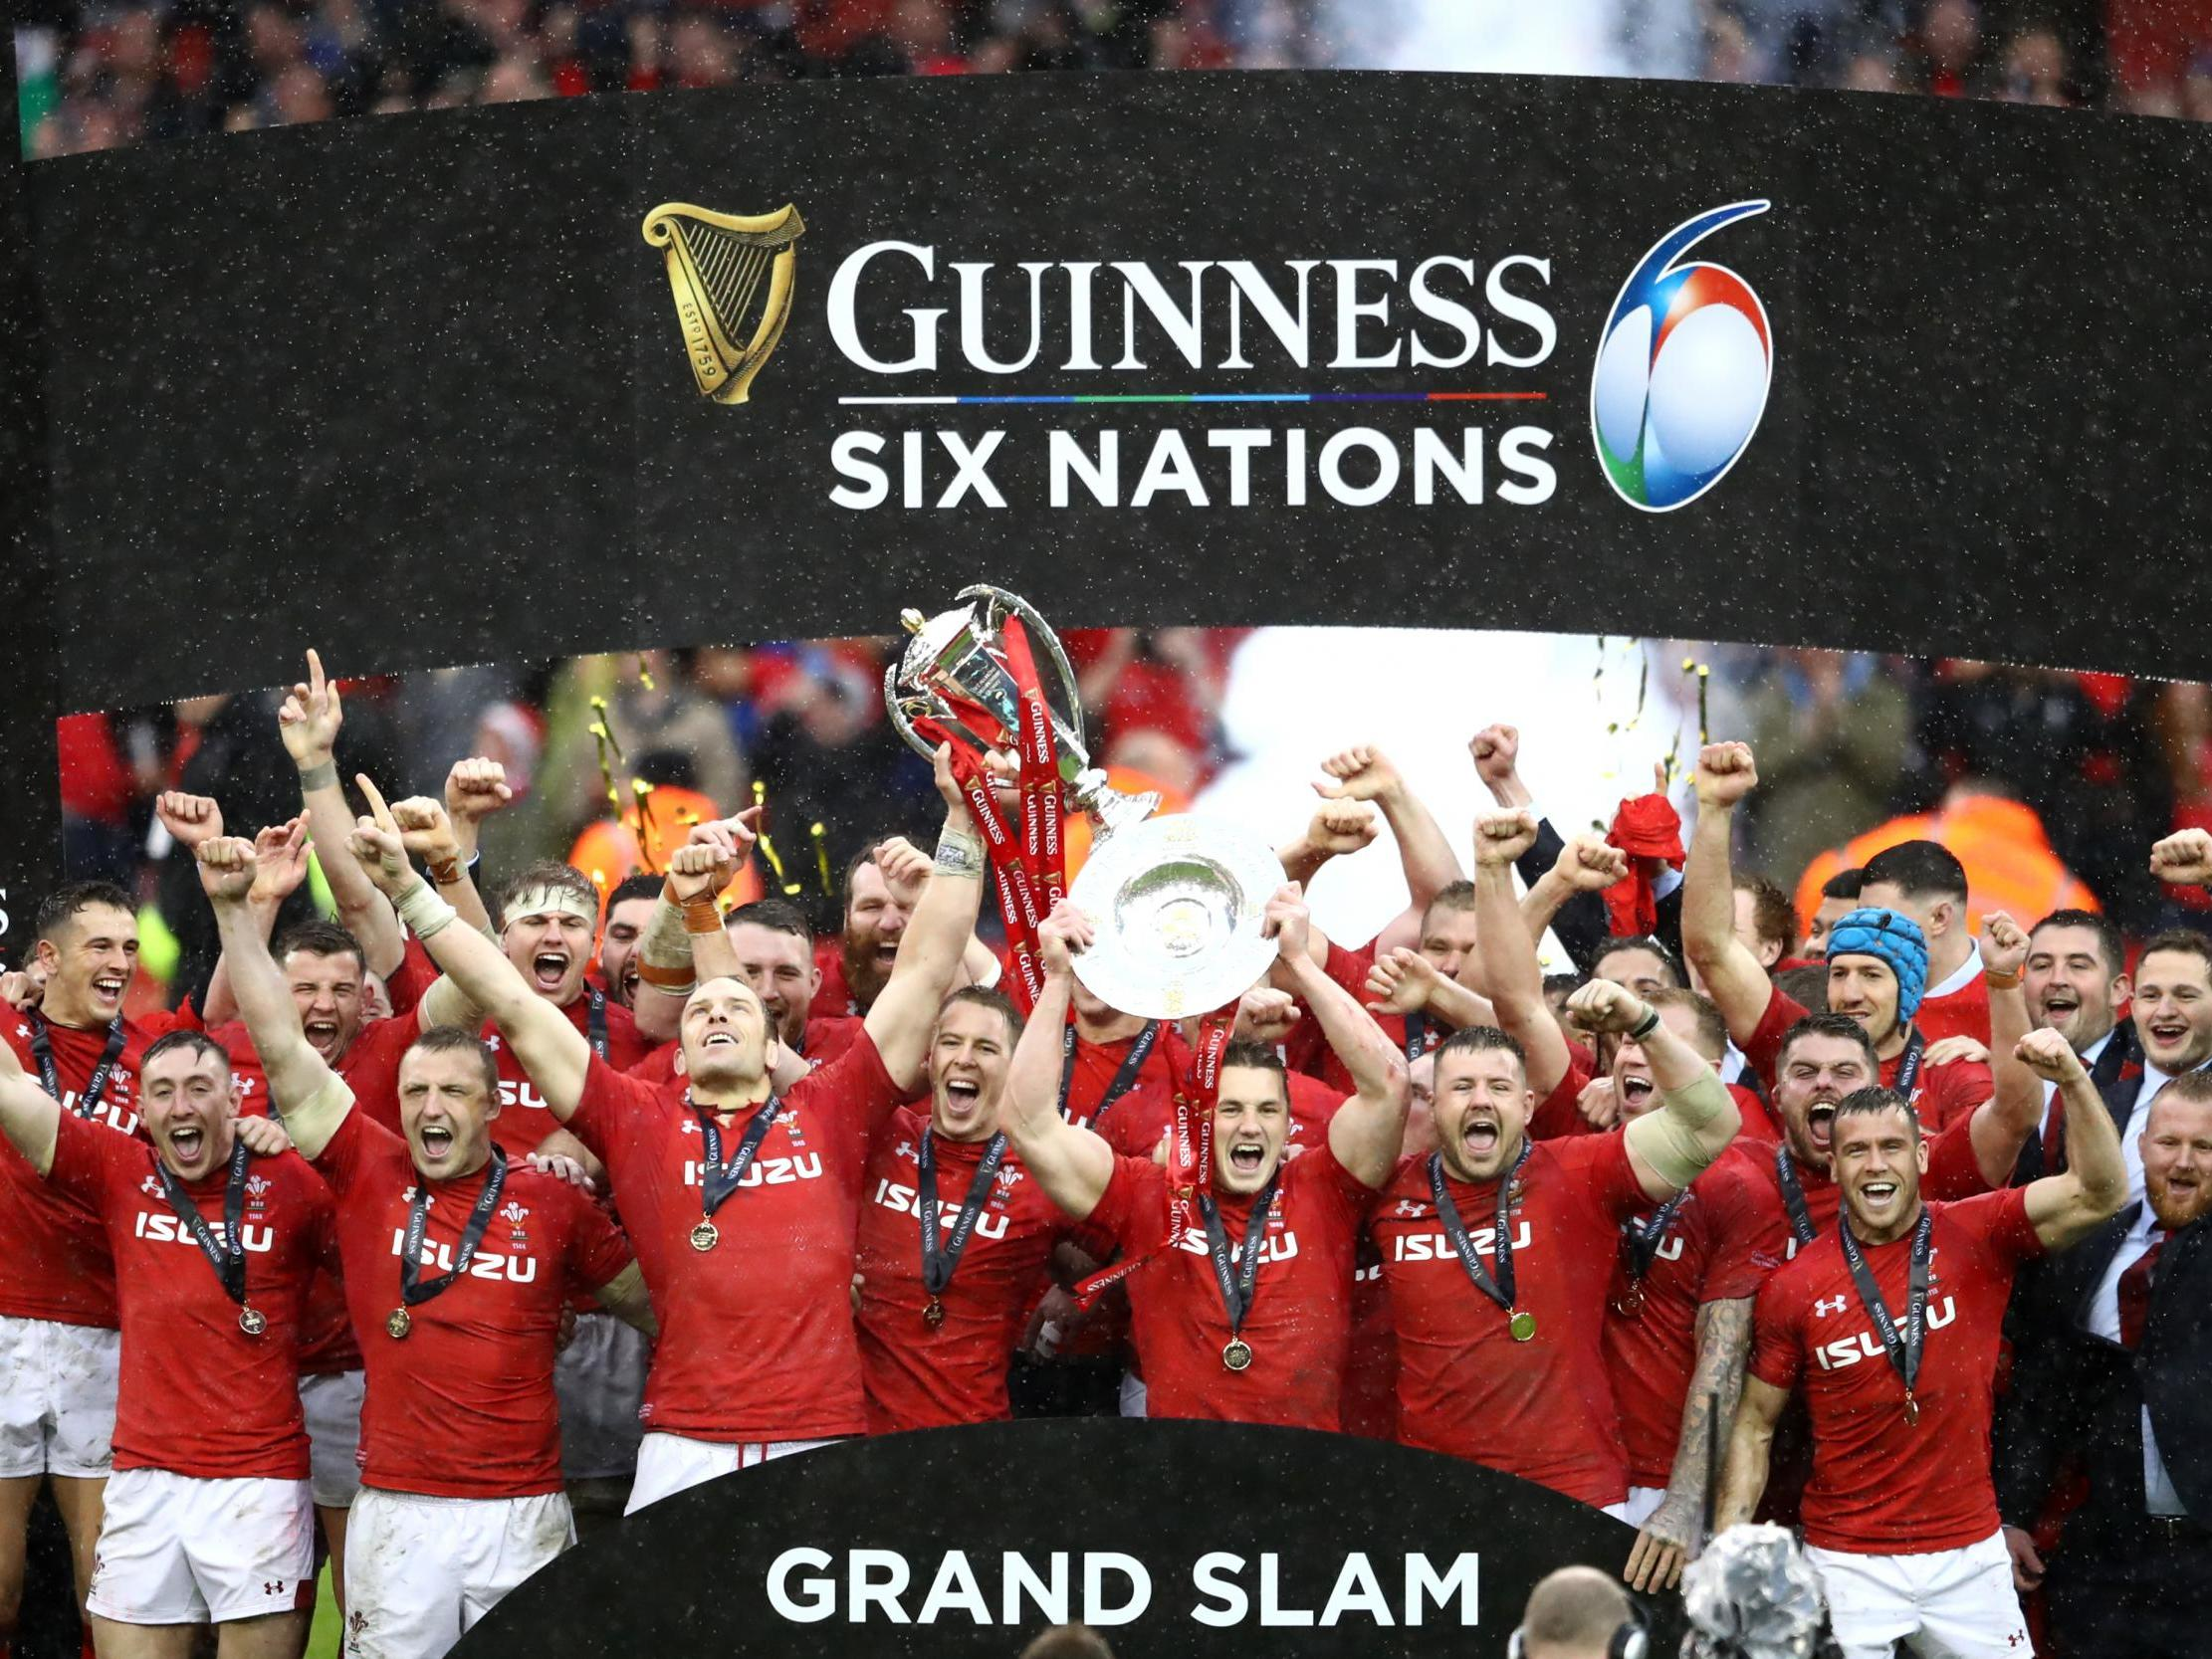 d0699e9b8b2 Six Nations fixtures: Friday nights scrapped for 2020 and 2021 as Wales  begin title defence against Italy | The Independent